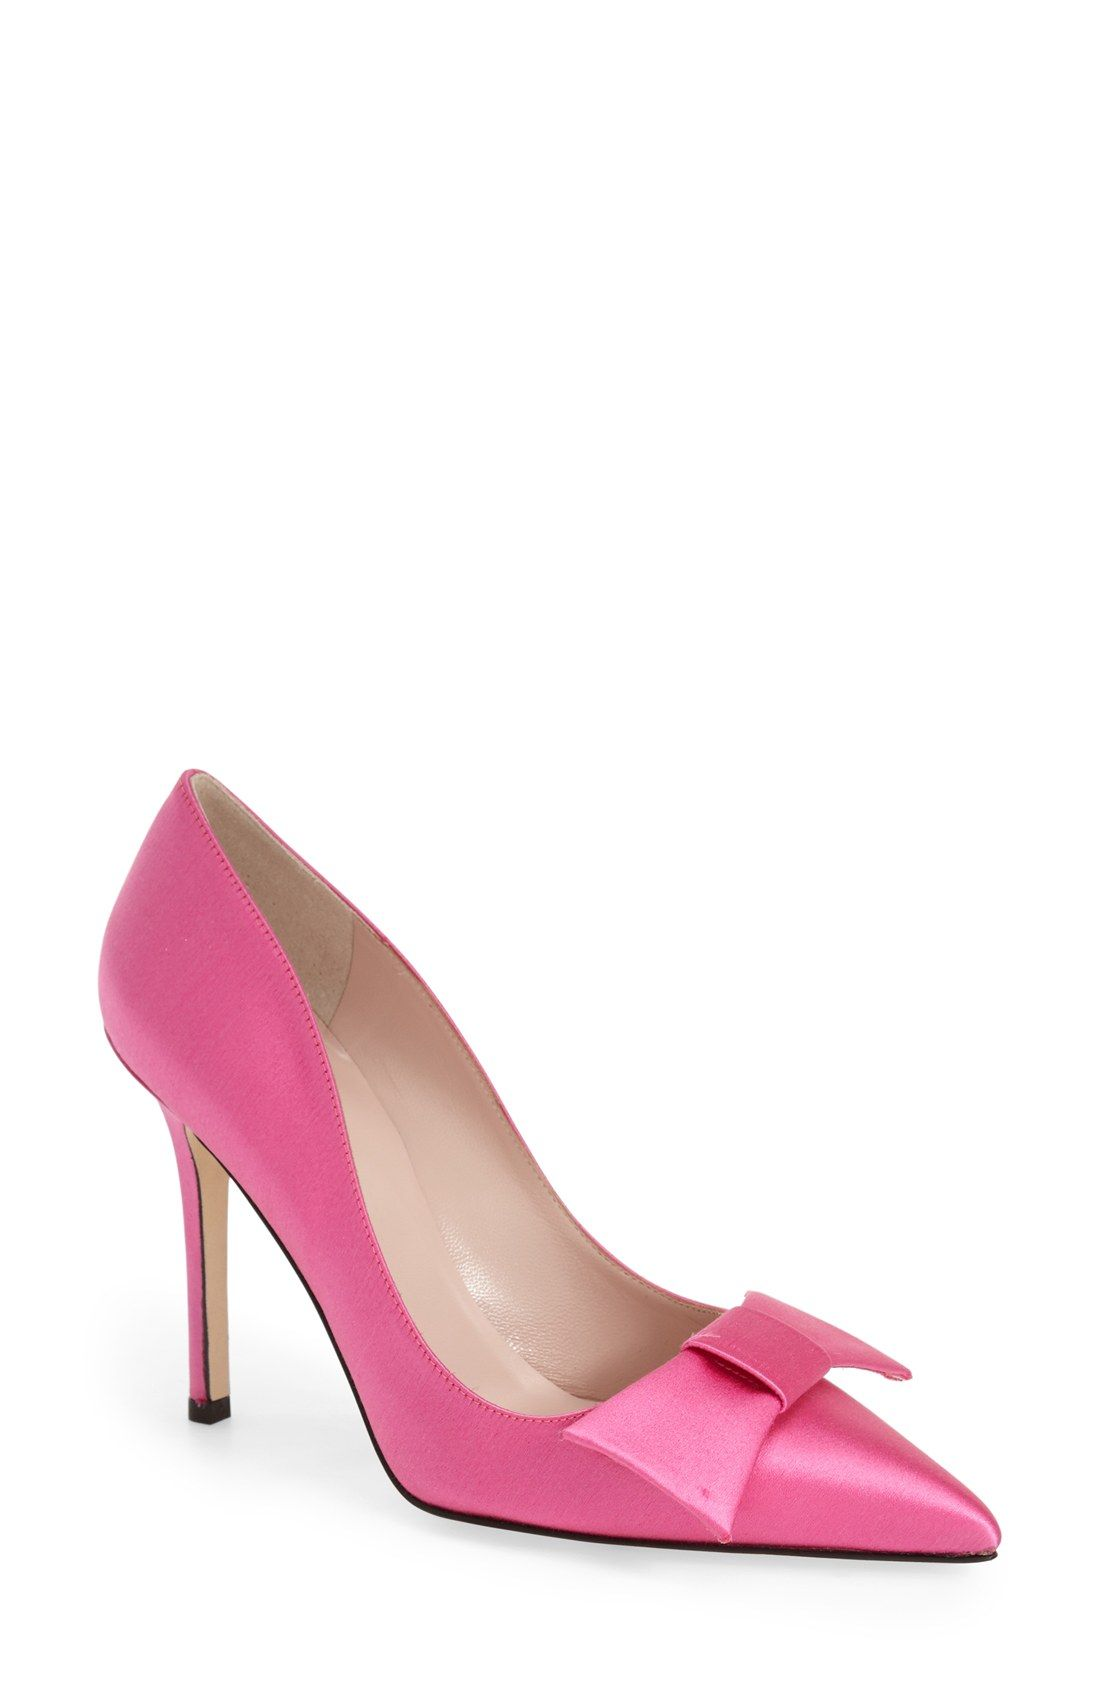 7b9666f0e12 A prim bow effortlessly refines this adorable pink Kate Spade satin pump.